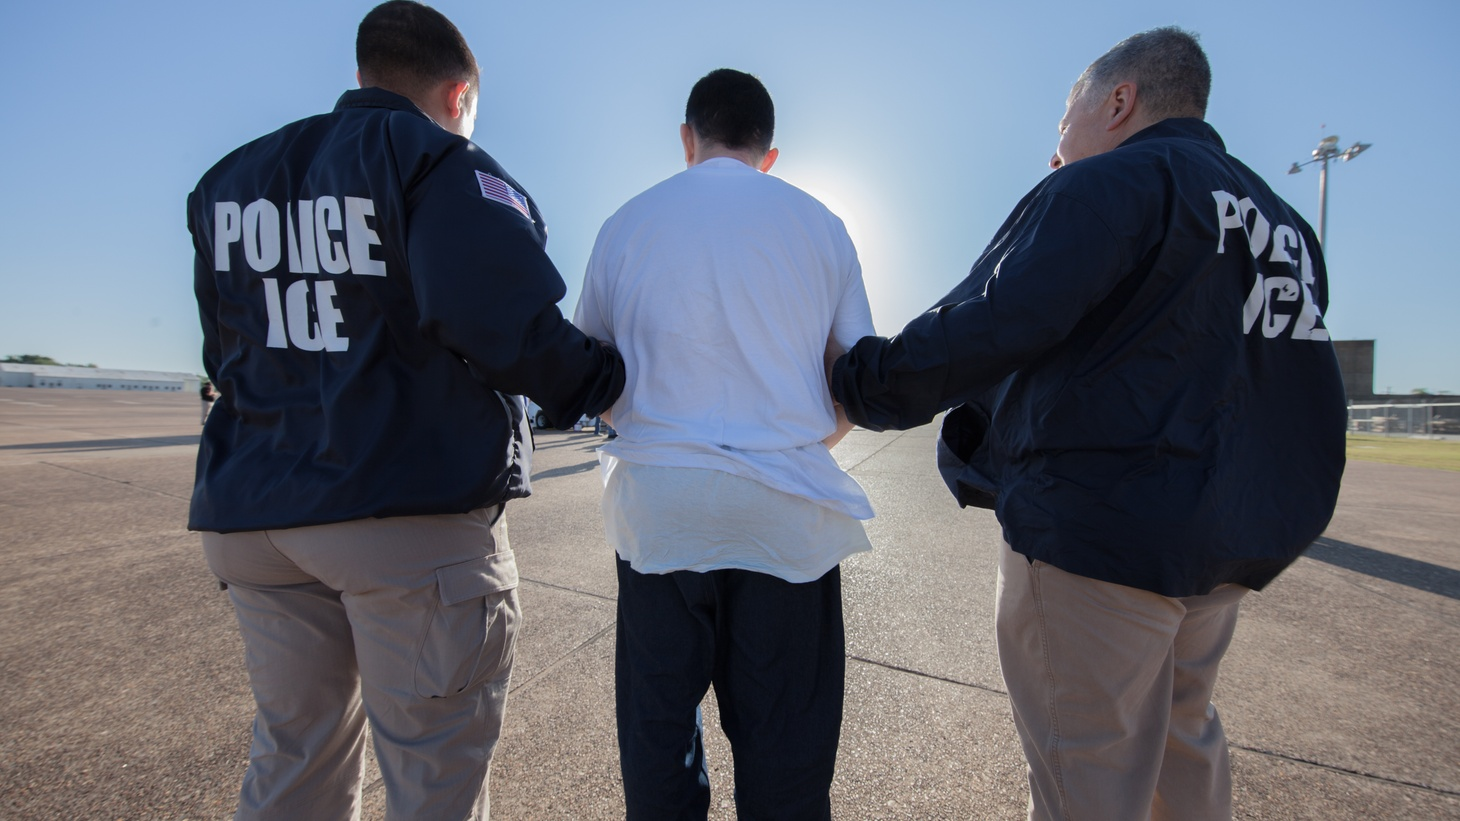 The U.S. Immigration and Customs Enforcement Agency has deported more than 40,000 people since the beginning of the COVID-19 pandemic.